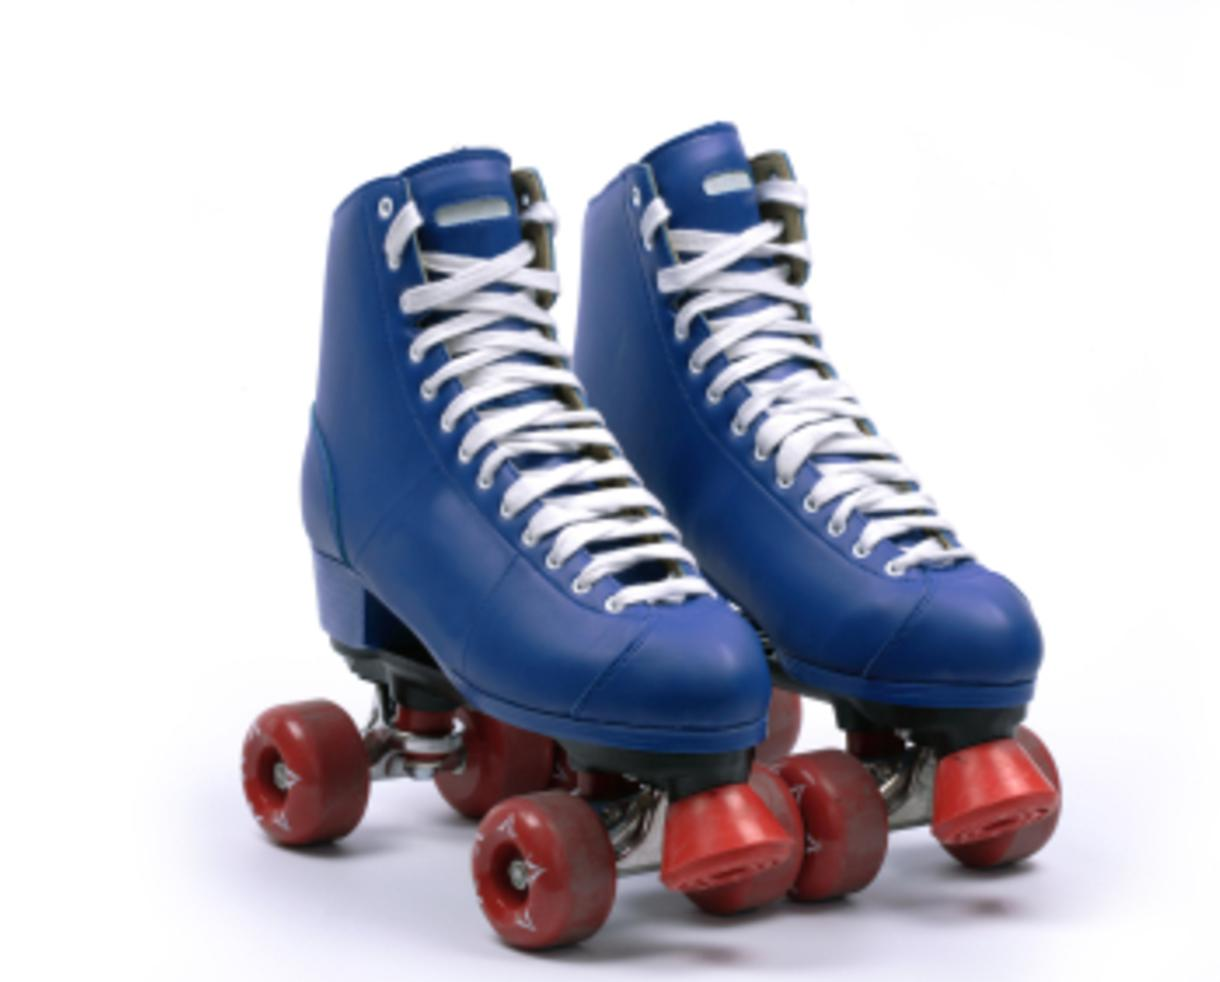 $5 for an Open Skate pass PLUS Skate Rental for Two OR $99 ALL INCLUSIVE Birthday Party at Bush Tabernacle Skating Rink in Purcellville (50% off)